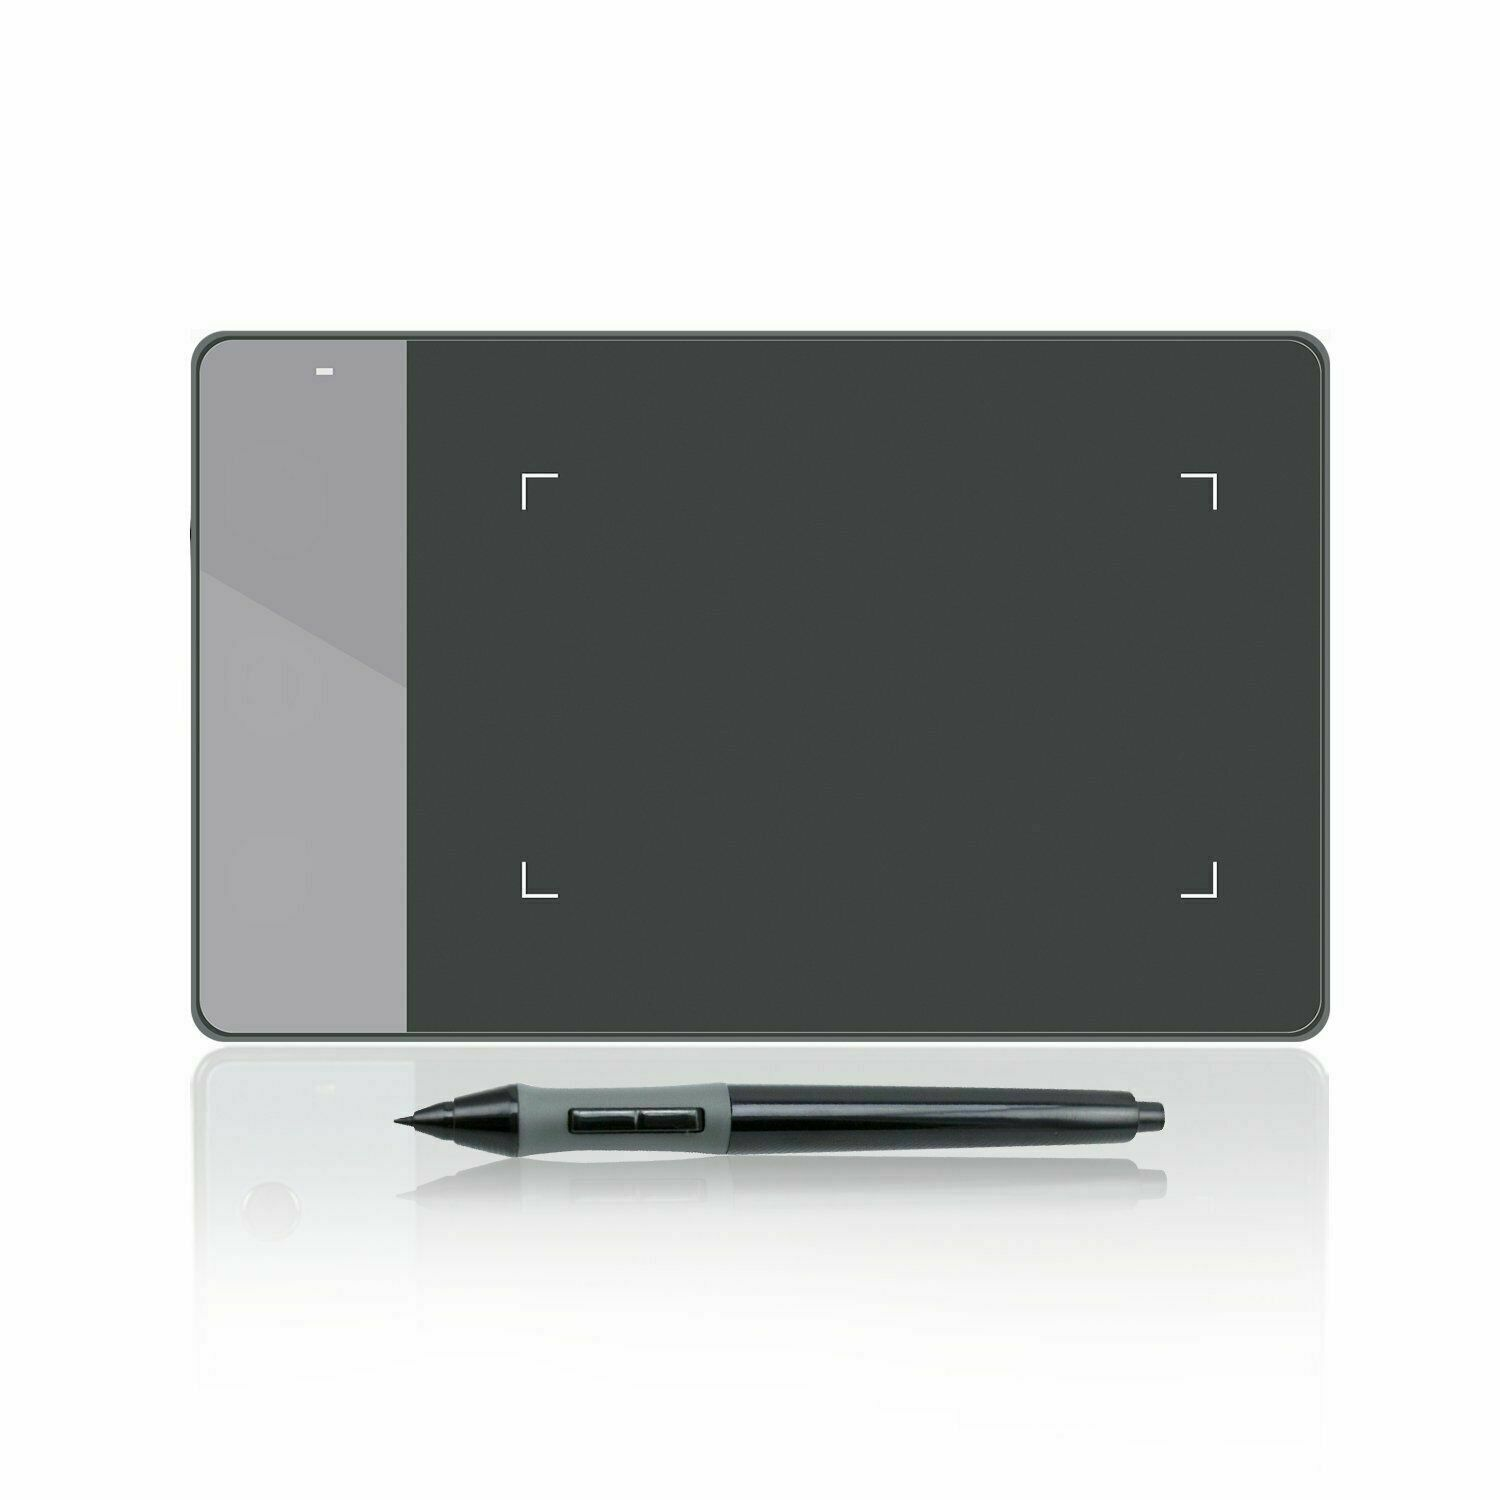 Huion 420 4 x 2 23 Inches OSU Tablet Graphics Drawing Pen Tablet + 10 nibs  US • $17 99